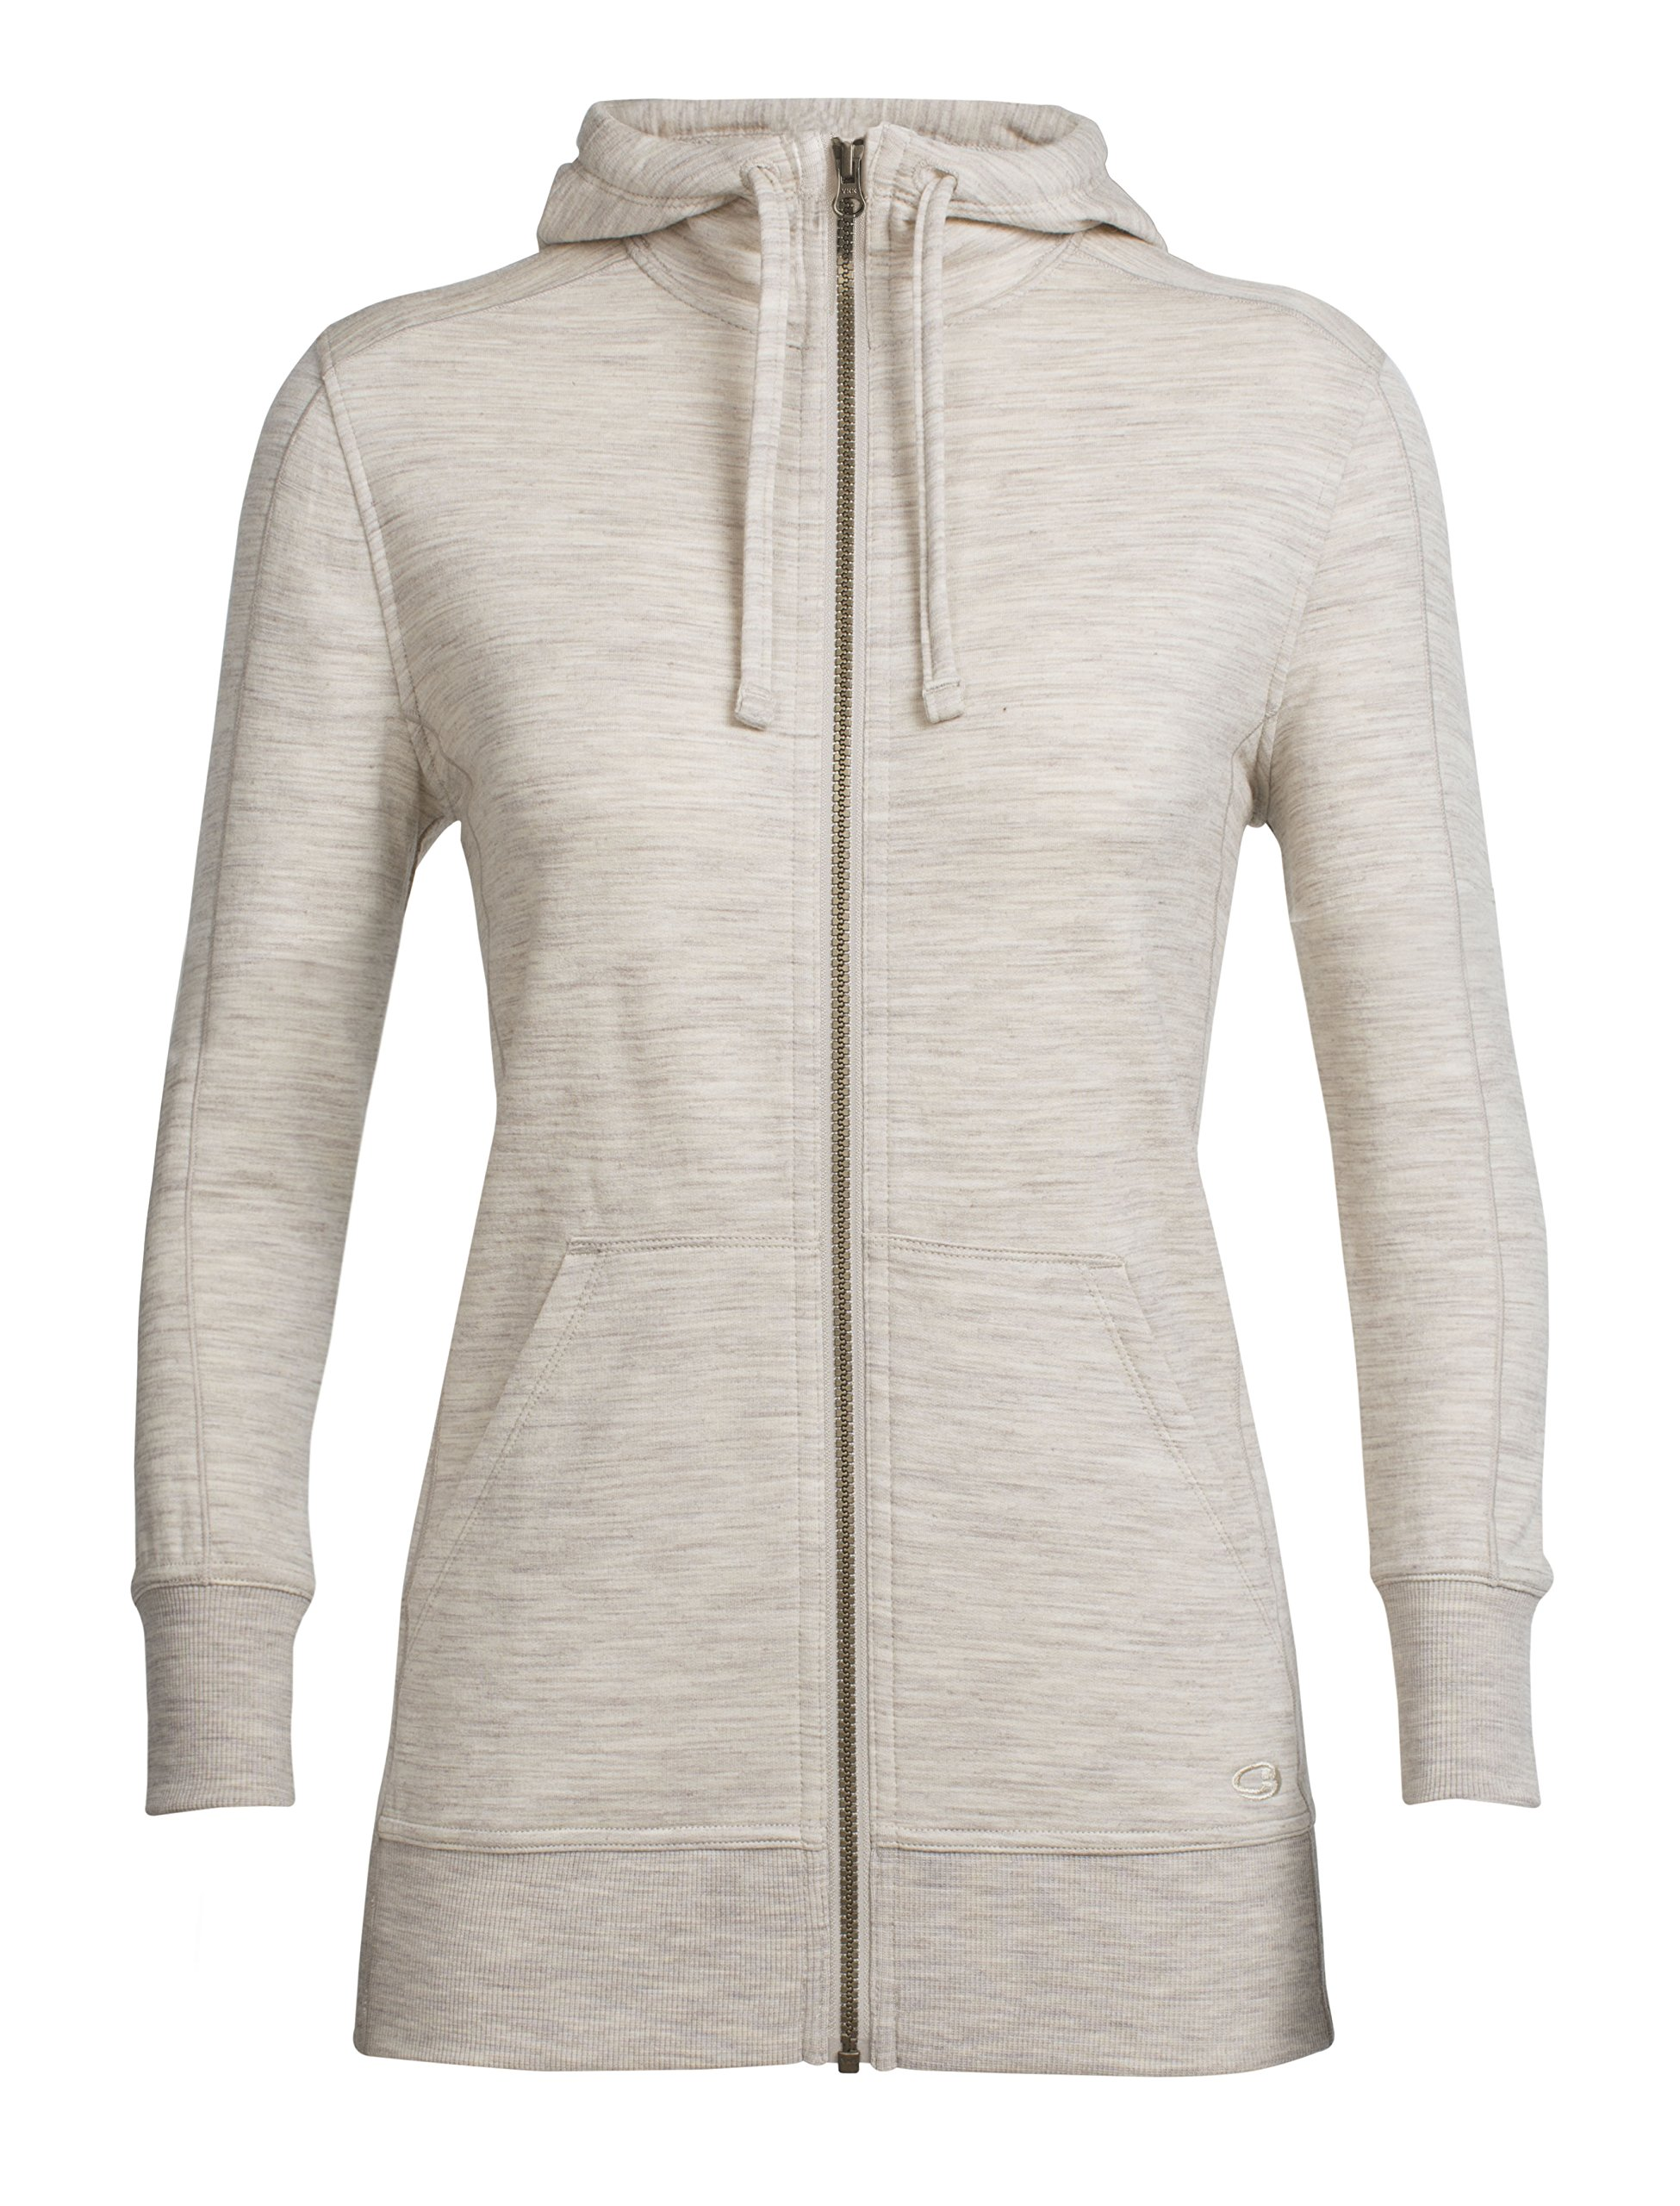 Icebreaker Merino Women's Dia Long Sleeve Zip Hood, Fawn Heather, X-Small